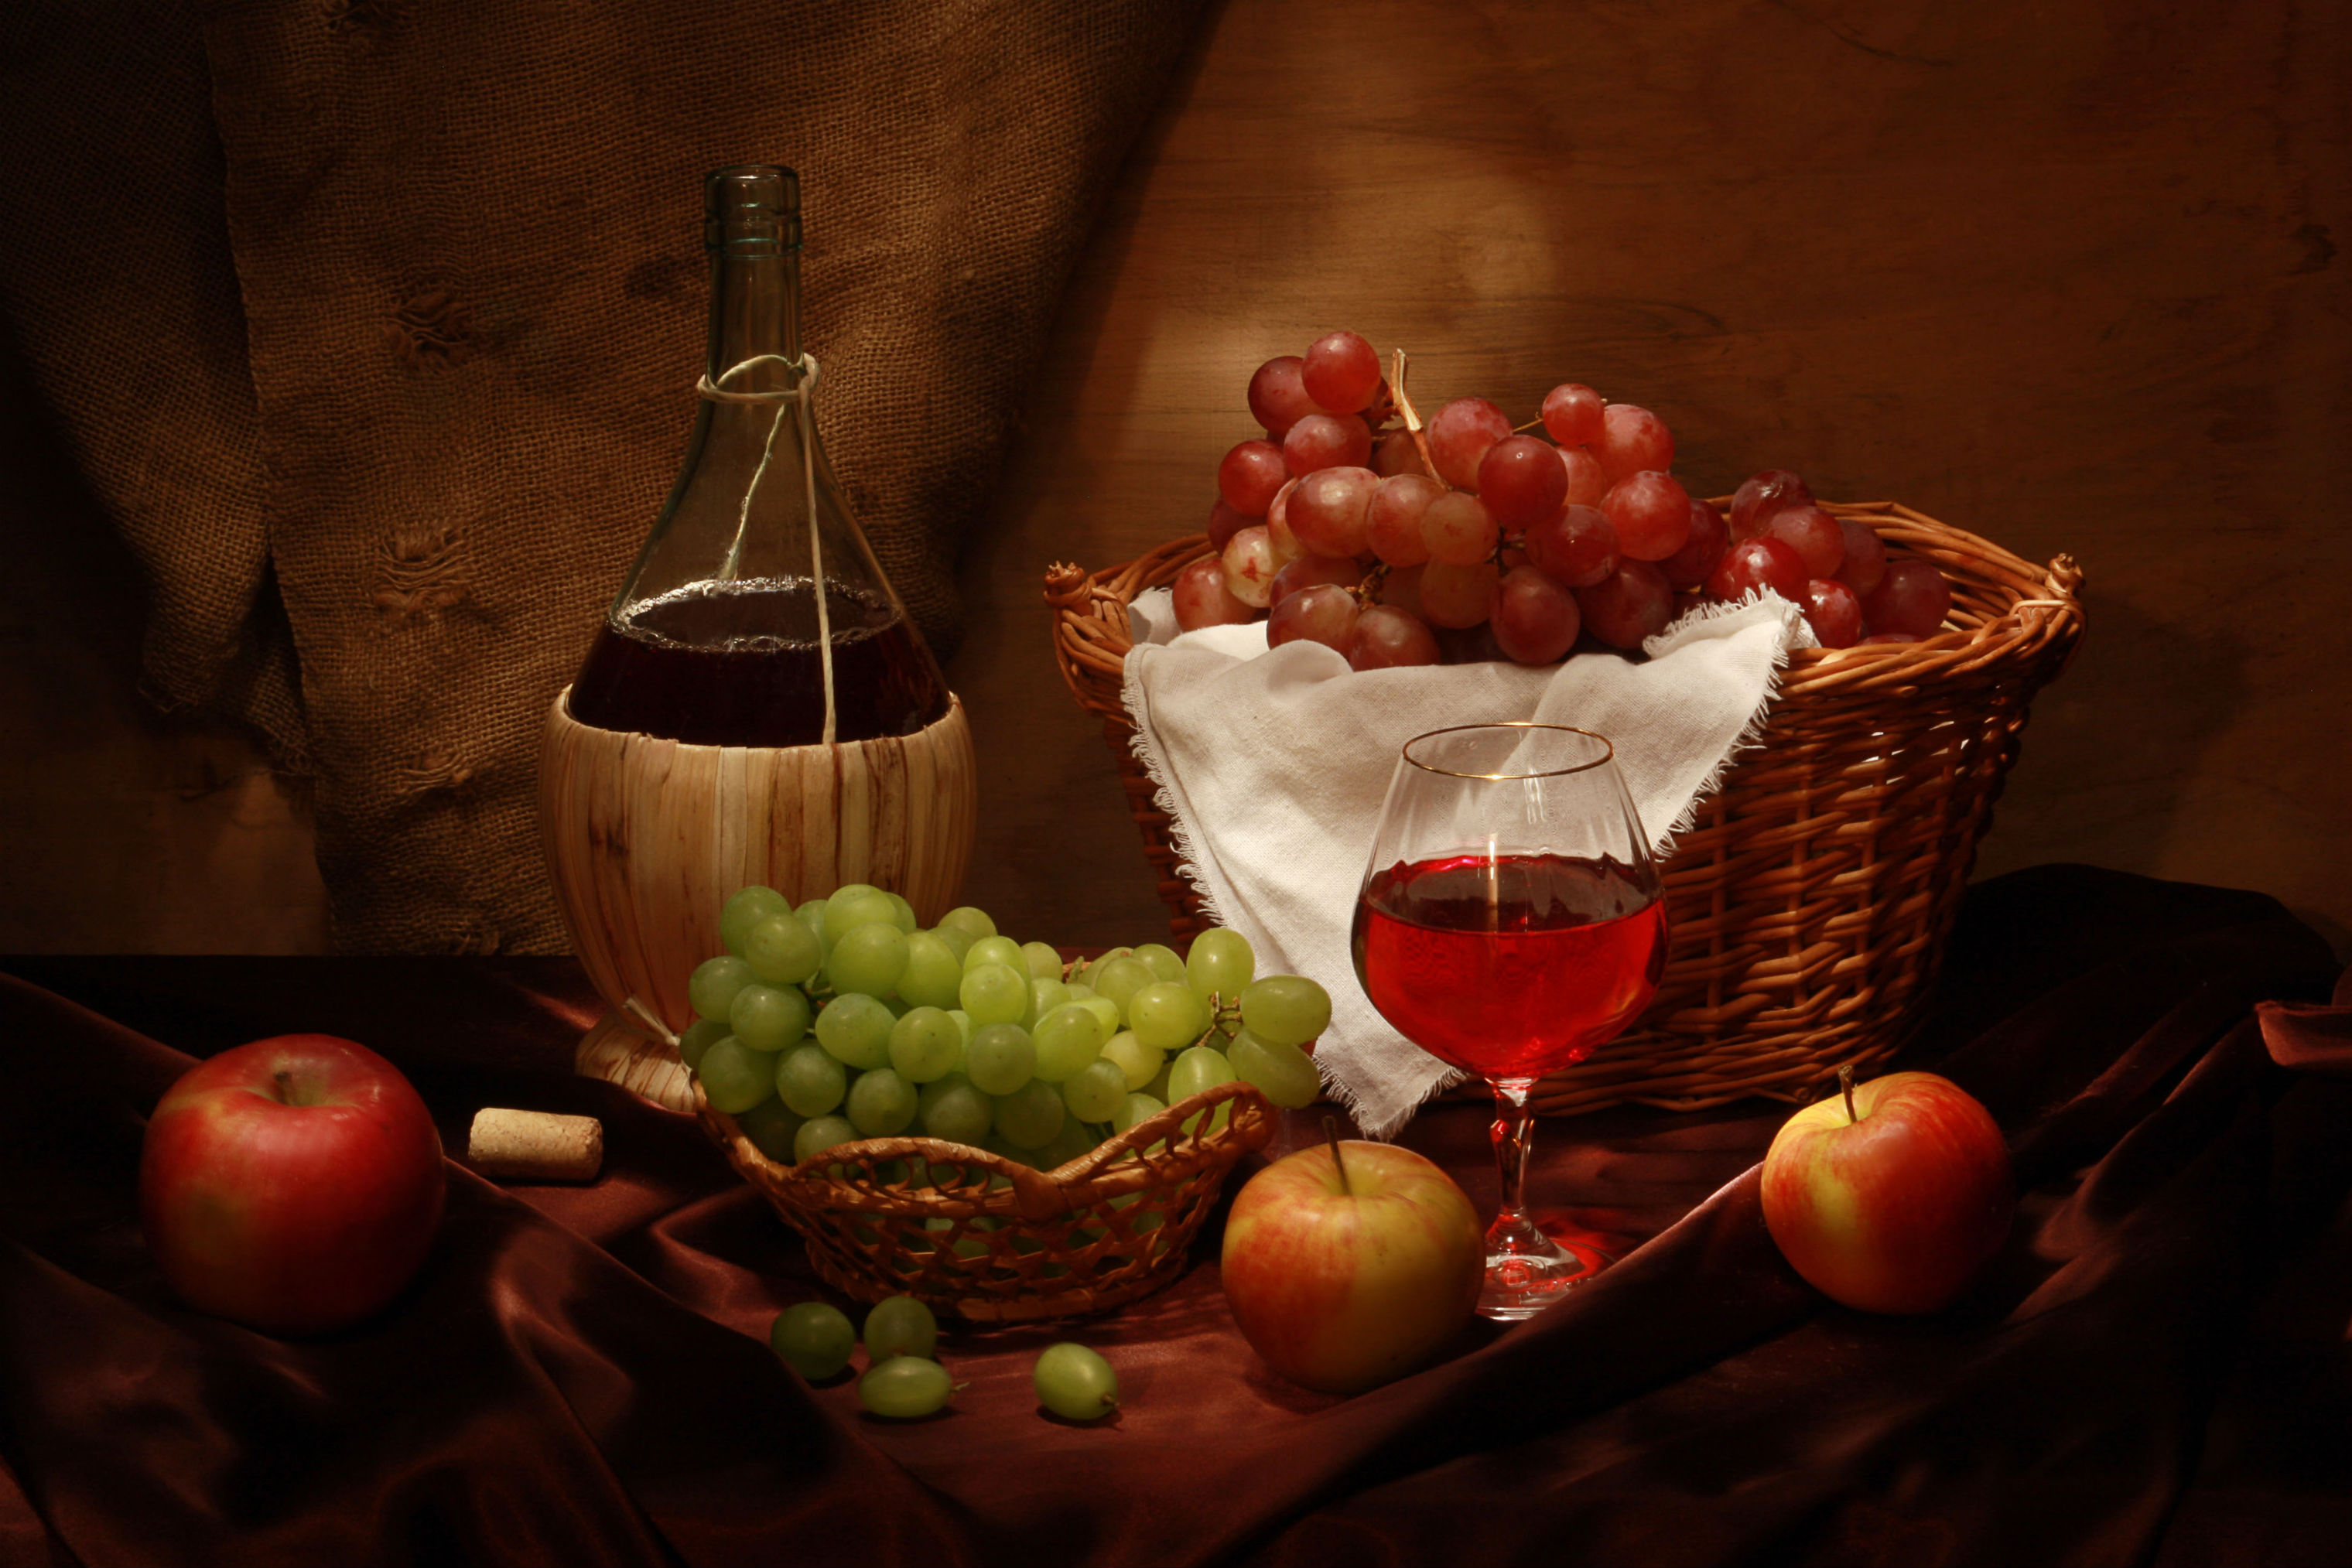 Still Life HD Wallpaper